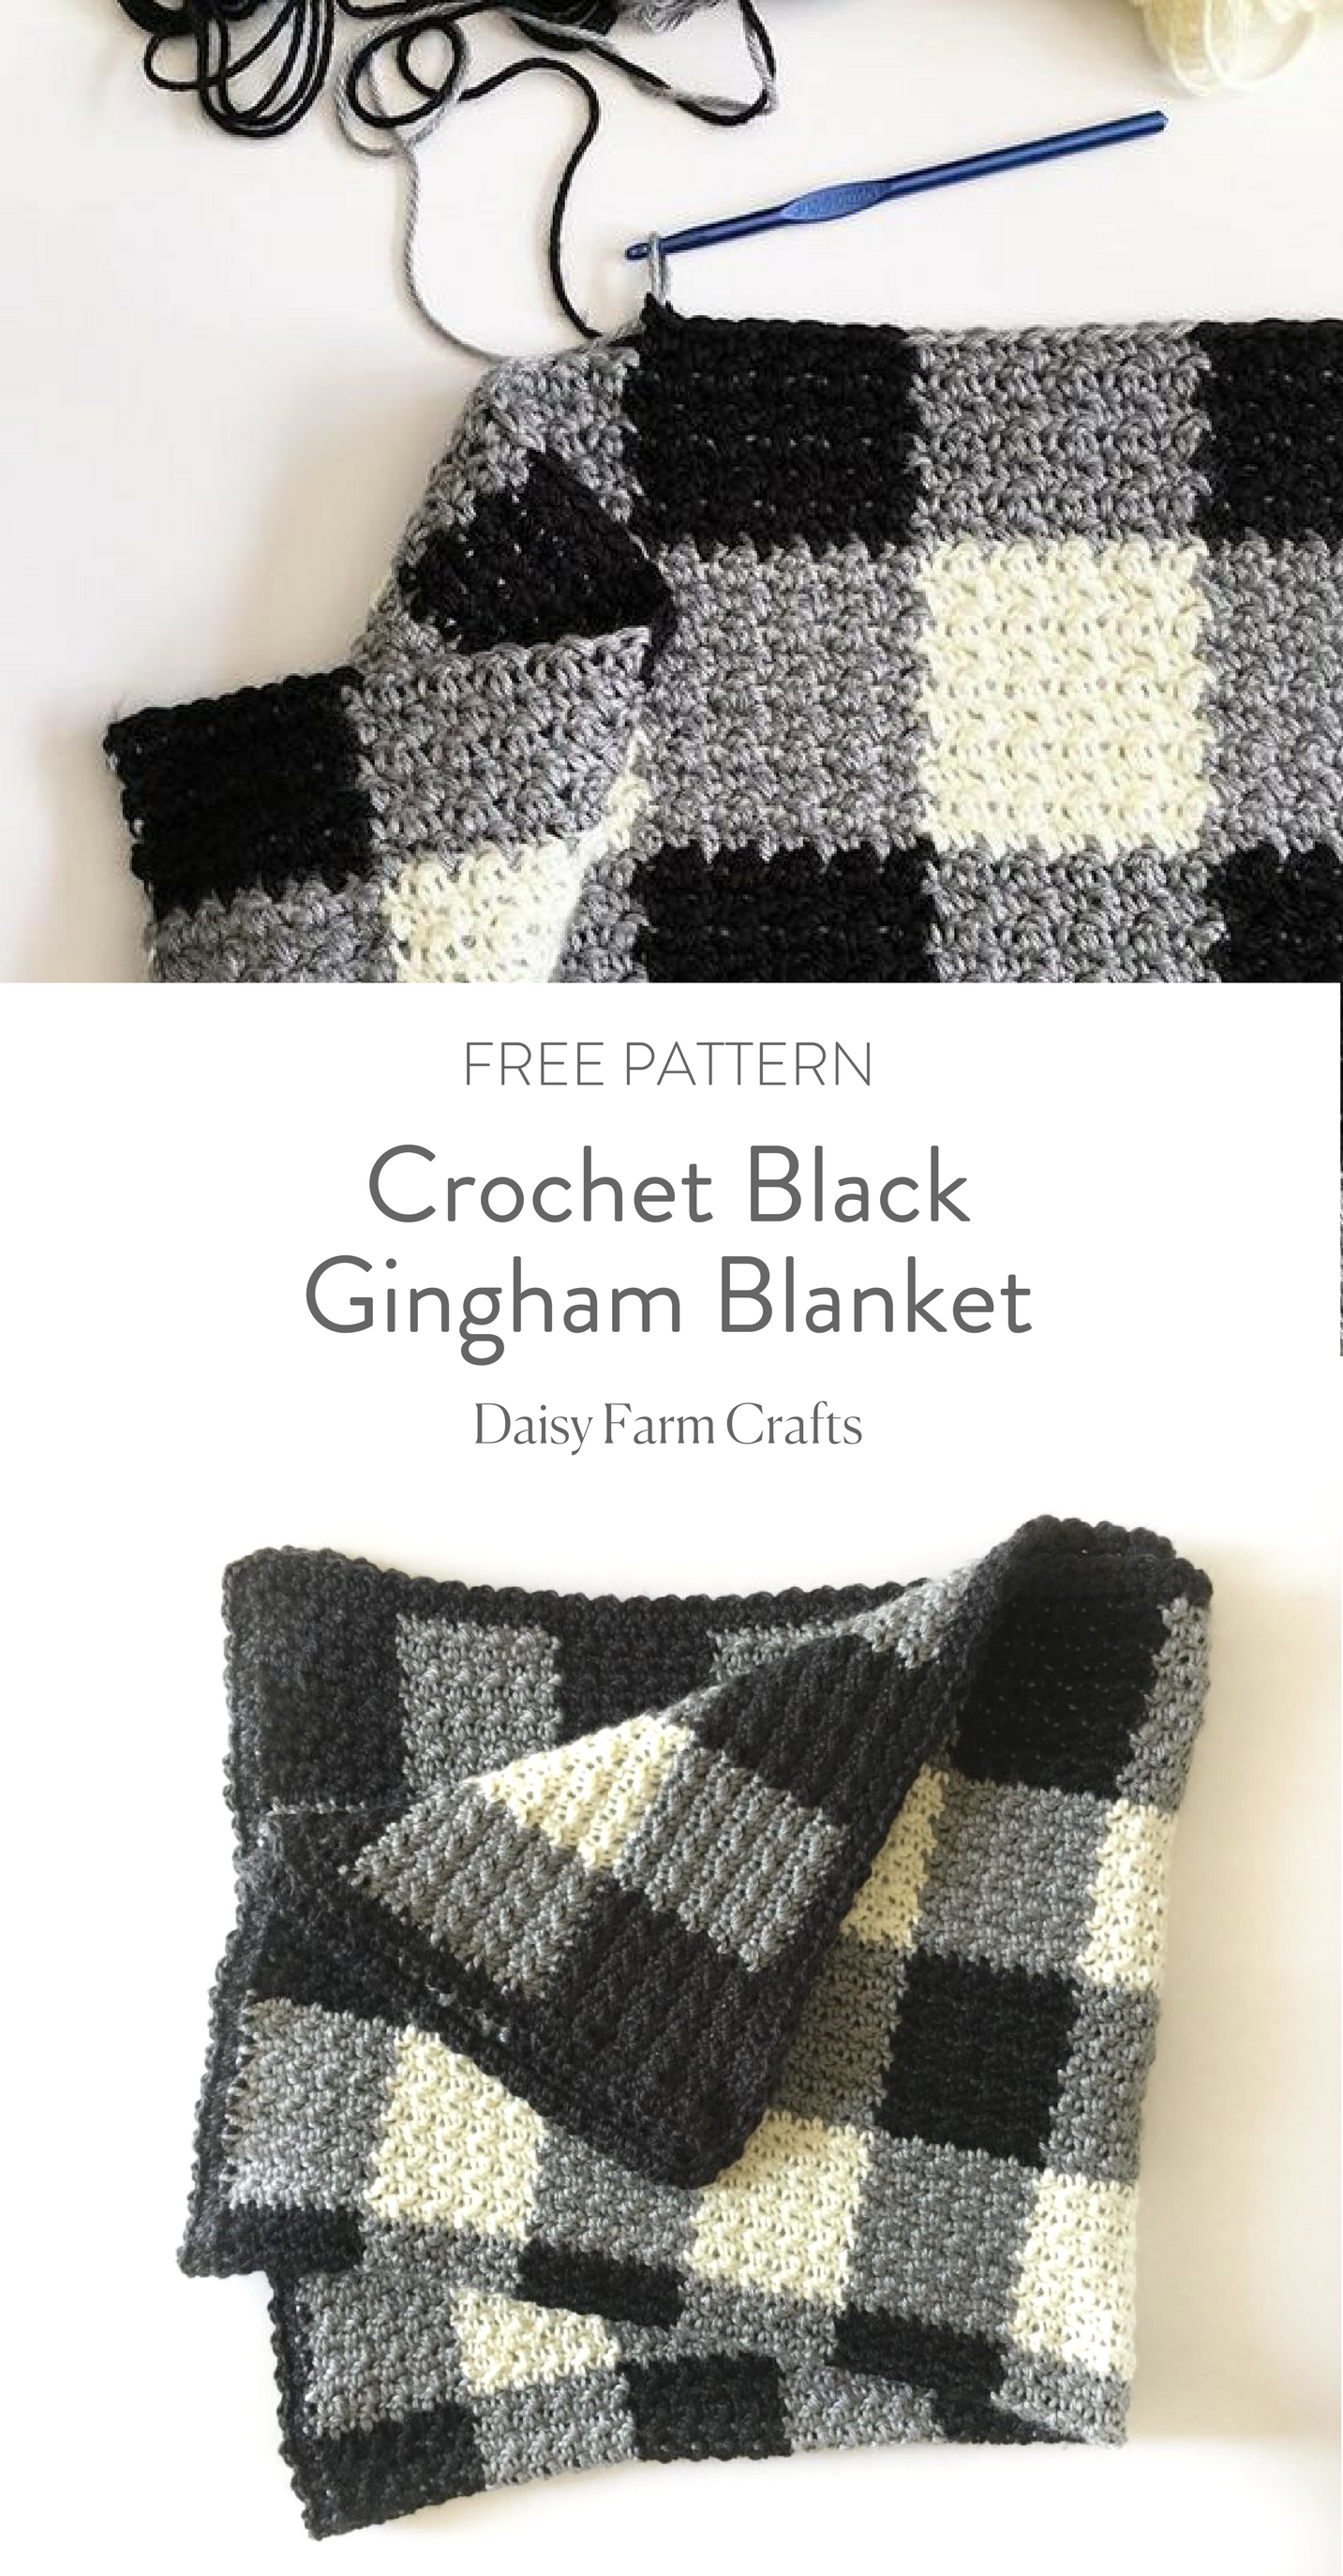 Crochet Black Gingham Blanket - Free Pattern | Crochet | Pinterest ...